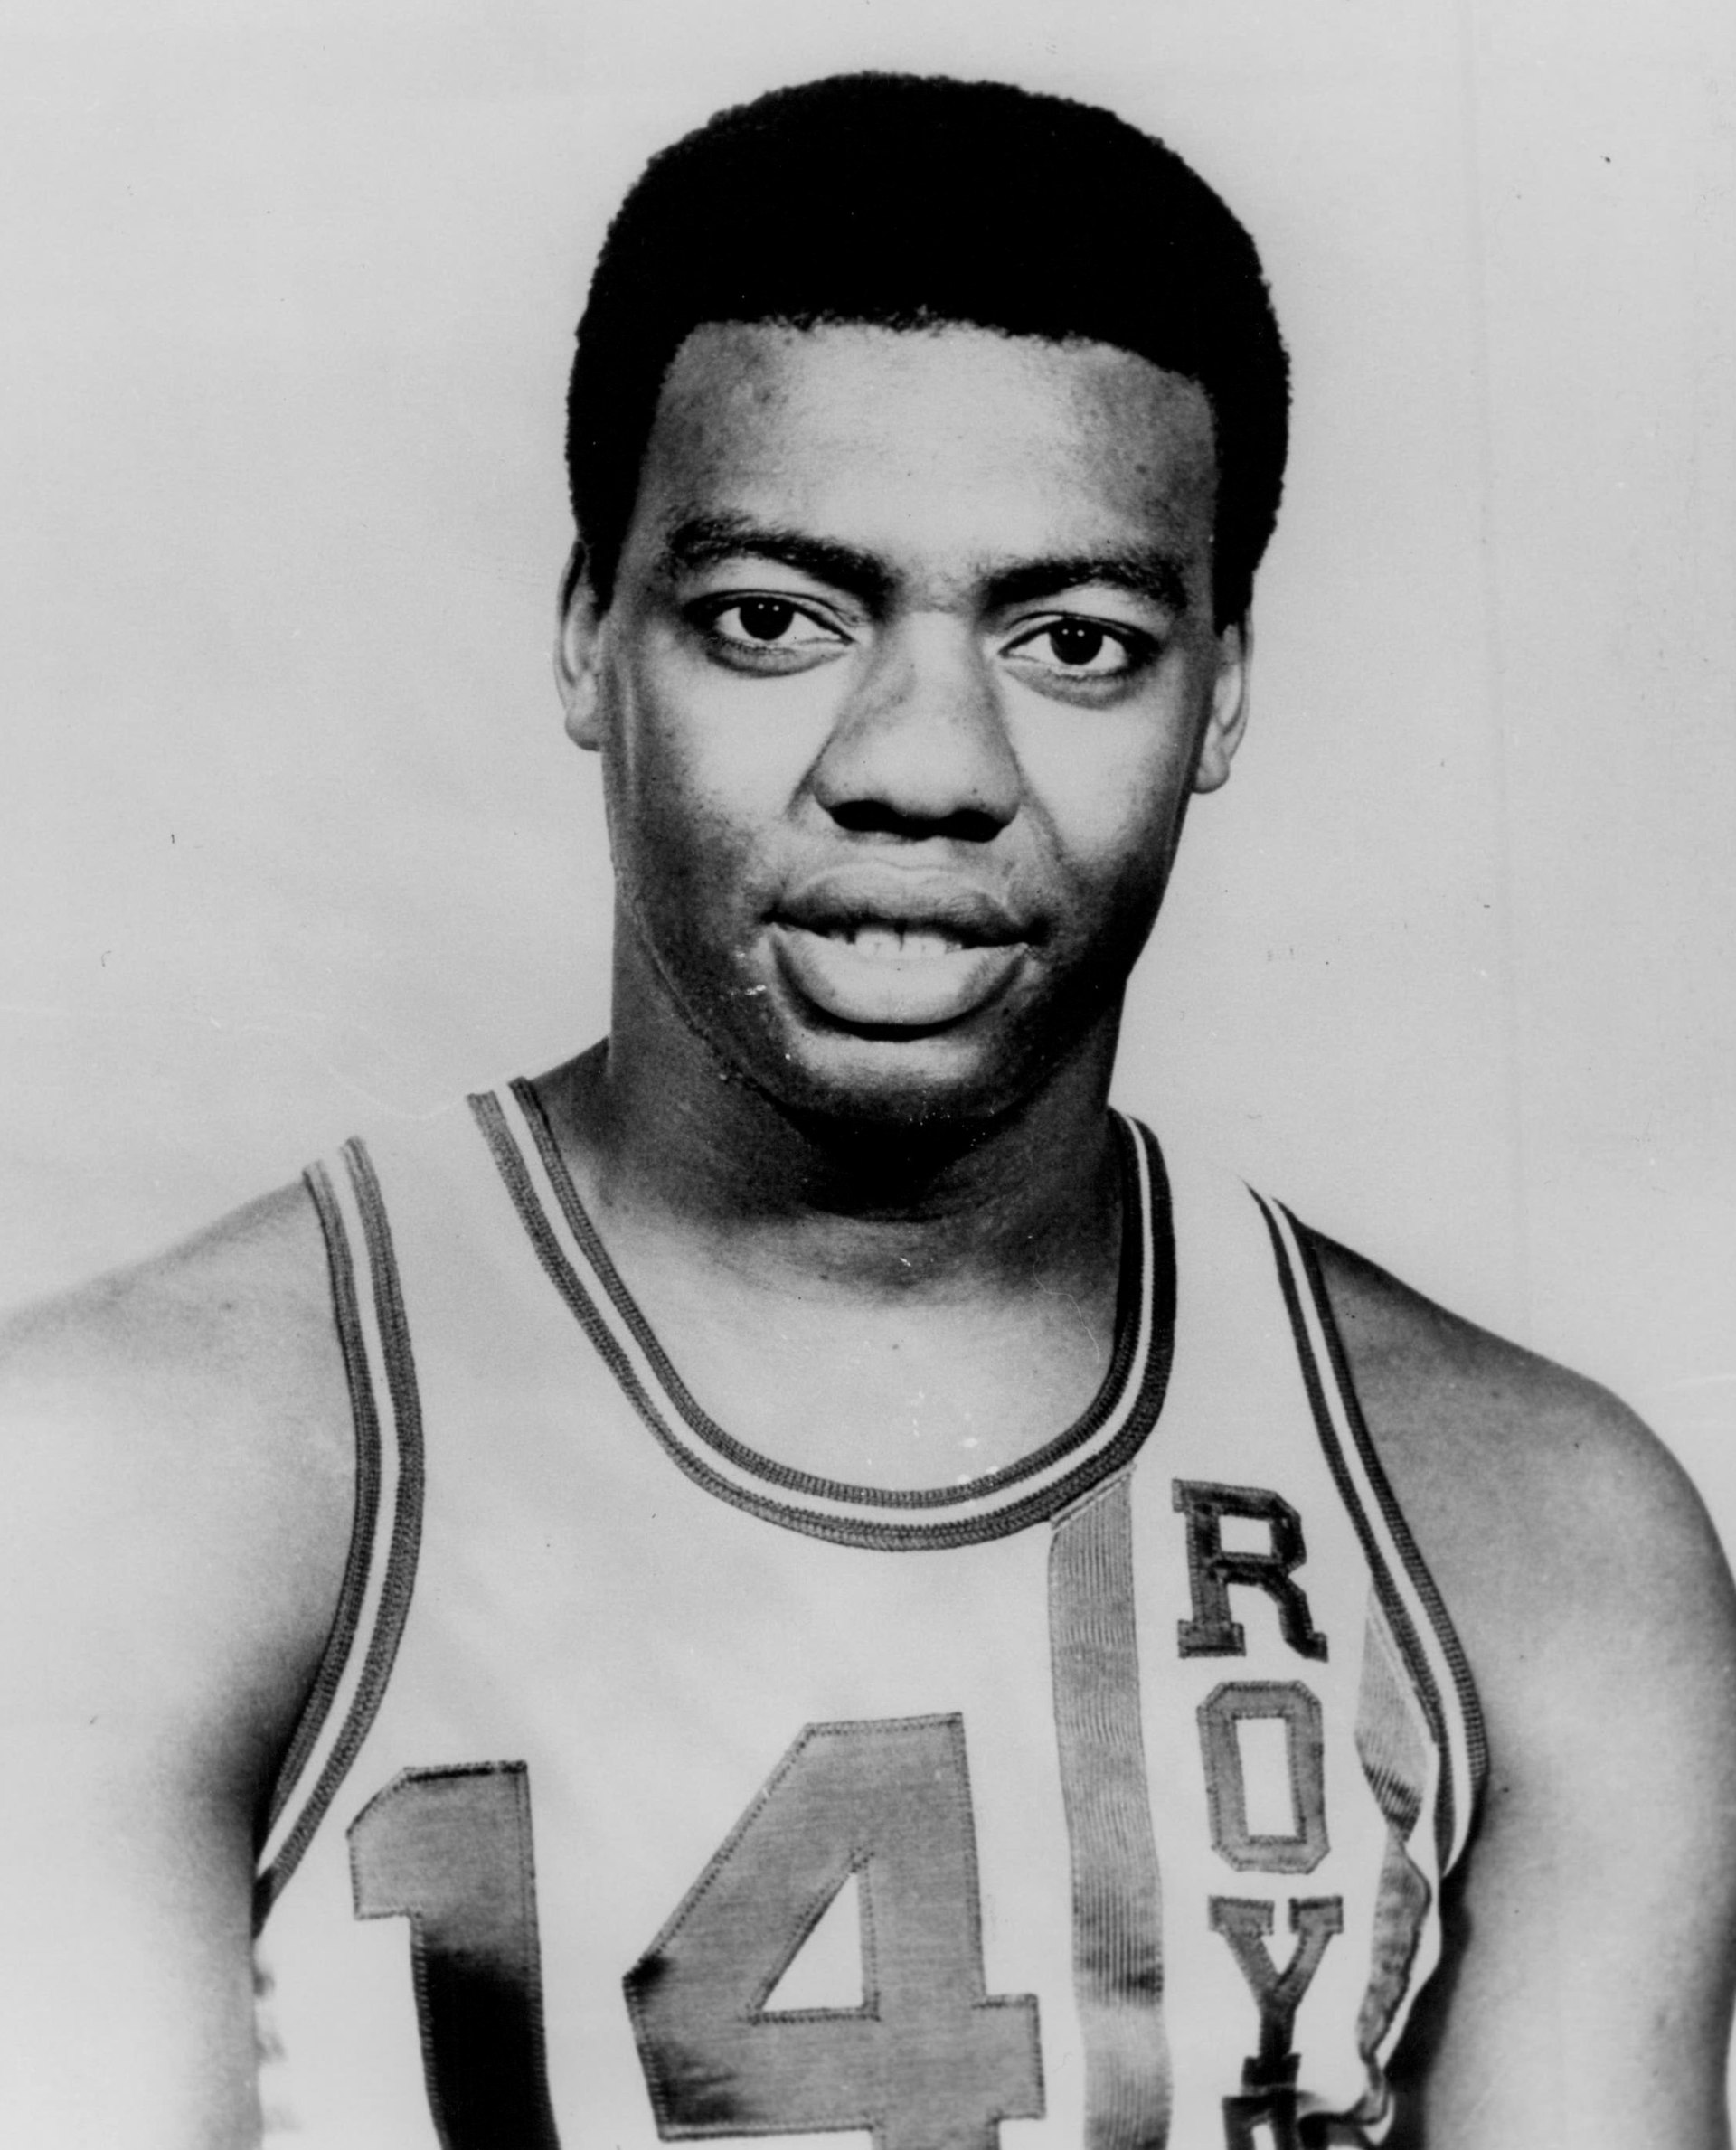 251619864091 additionally Week History Royals Select Robertson further 100418854 also Hawkins Connie furthermore . on oscar robertson cincinnati royals pictures